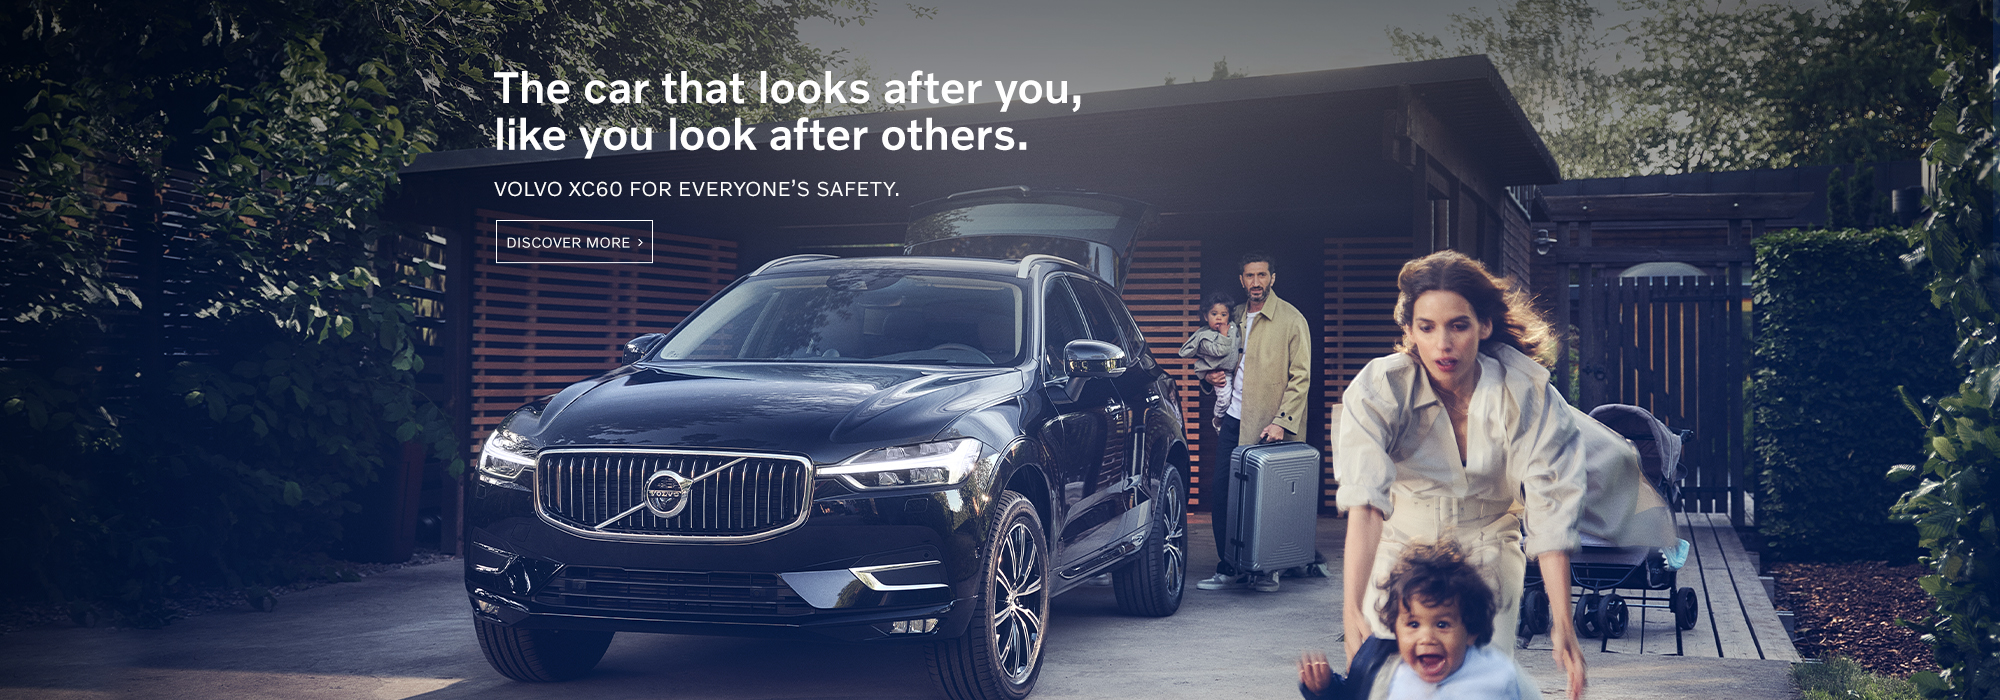 Moment 3 - XC60 Family Safety